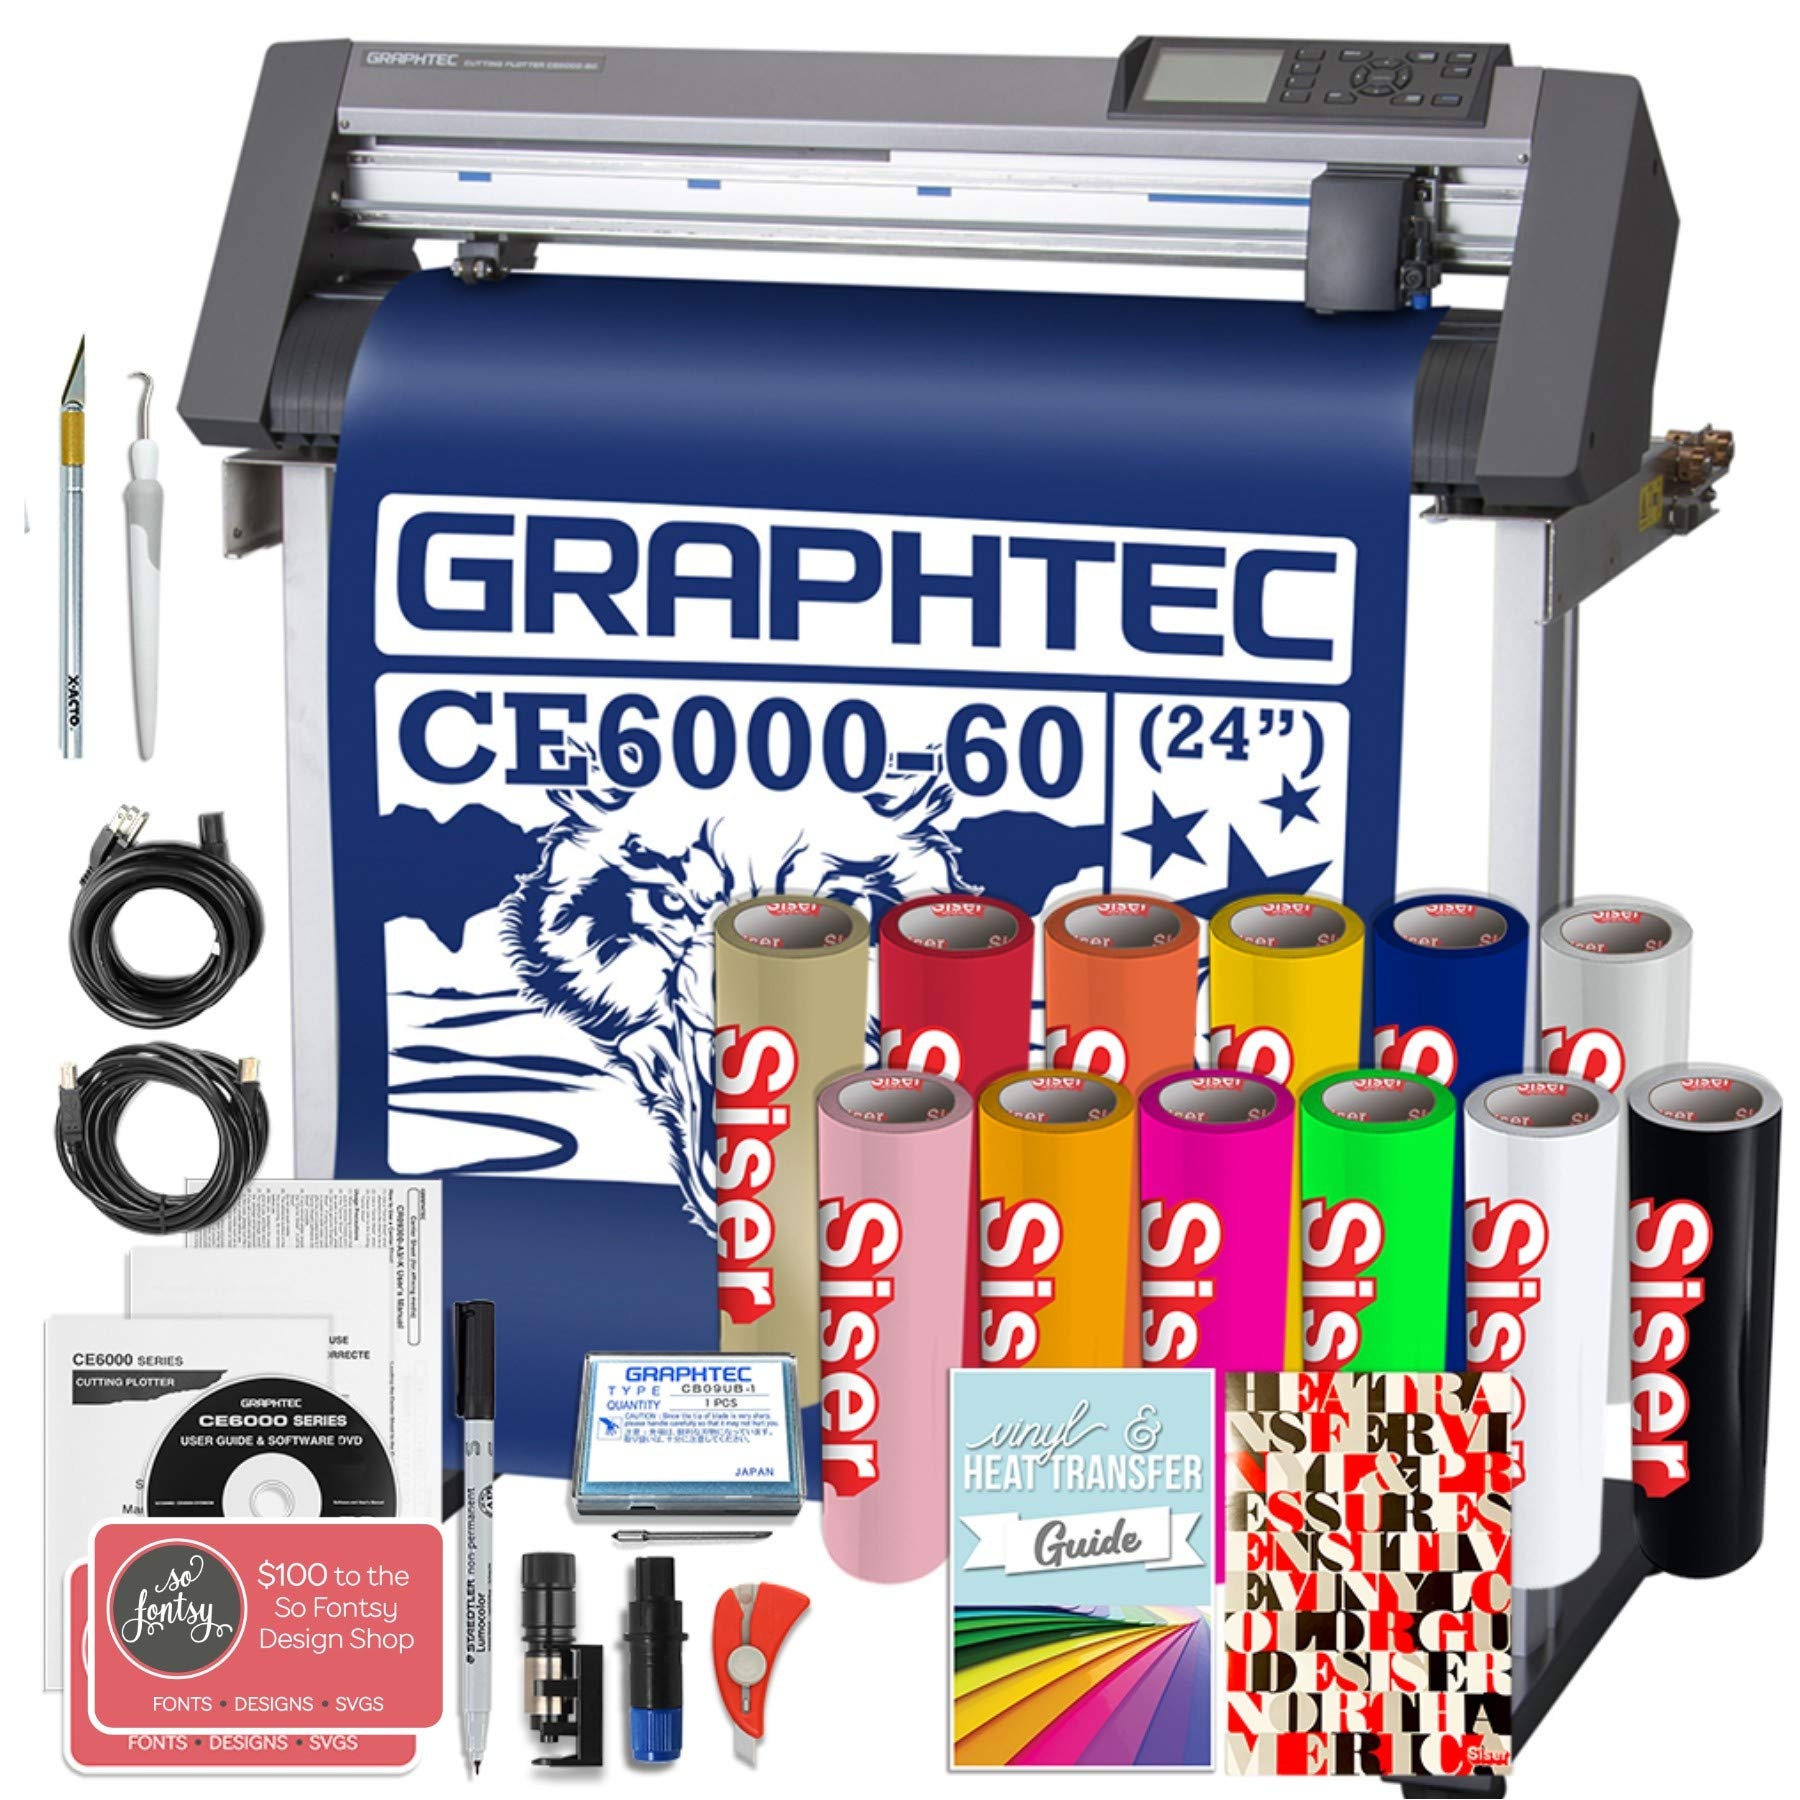 Graphtec Plus CE6000-60 24 Inch Professional Vinyl Cutter with Bonus $700 in Software, Easyweed HTV, and 2 Year Warranty by Graphtec